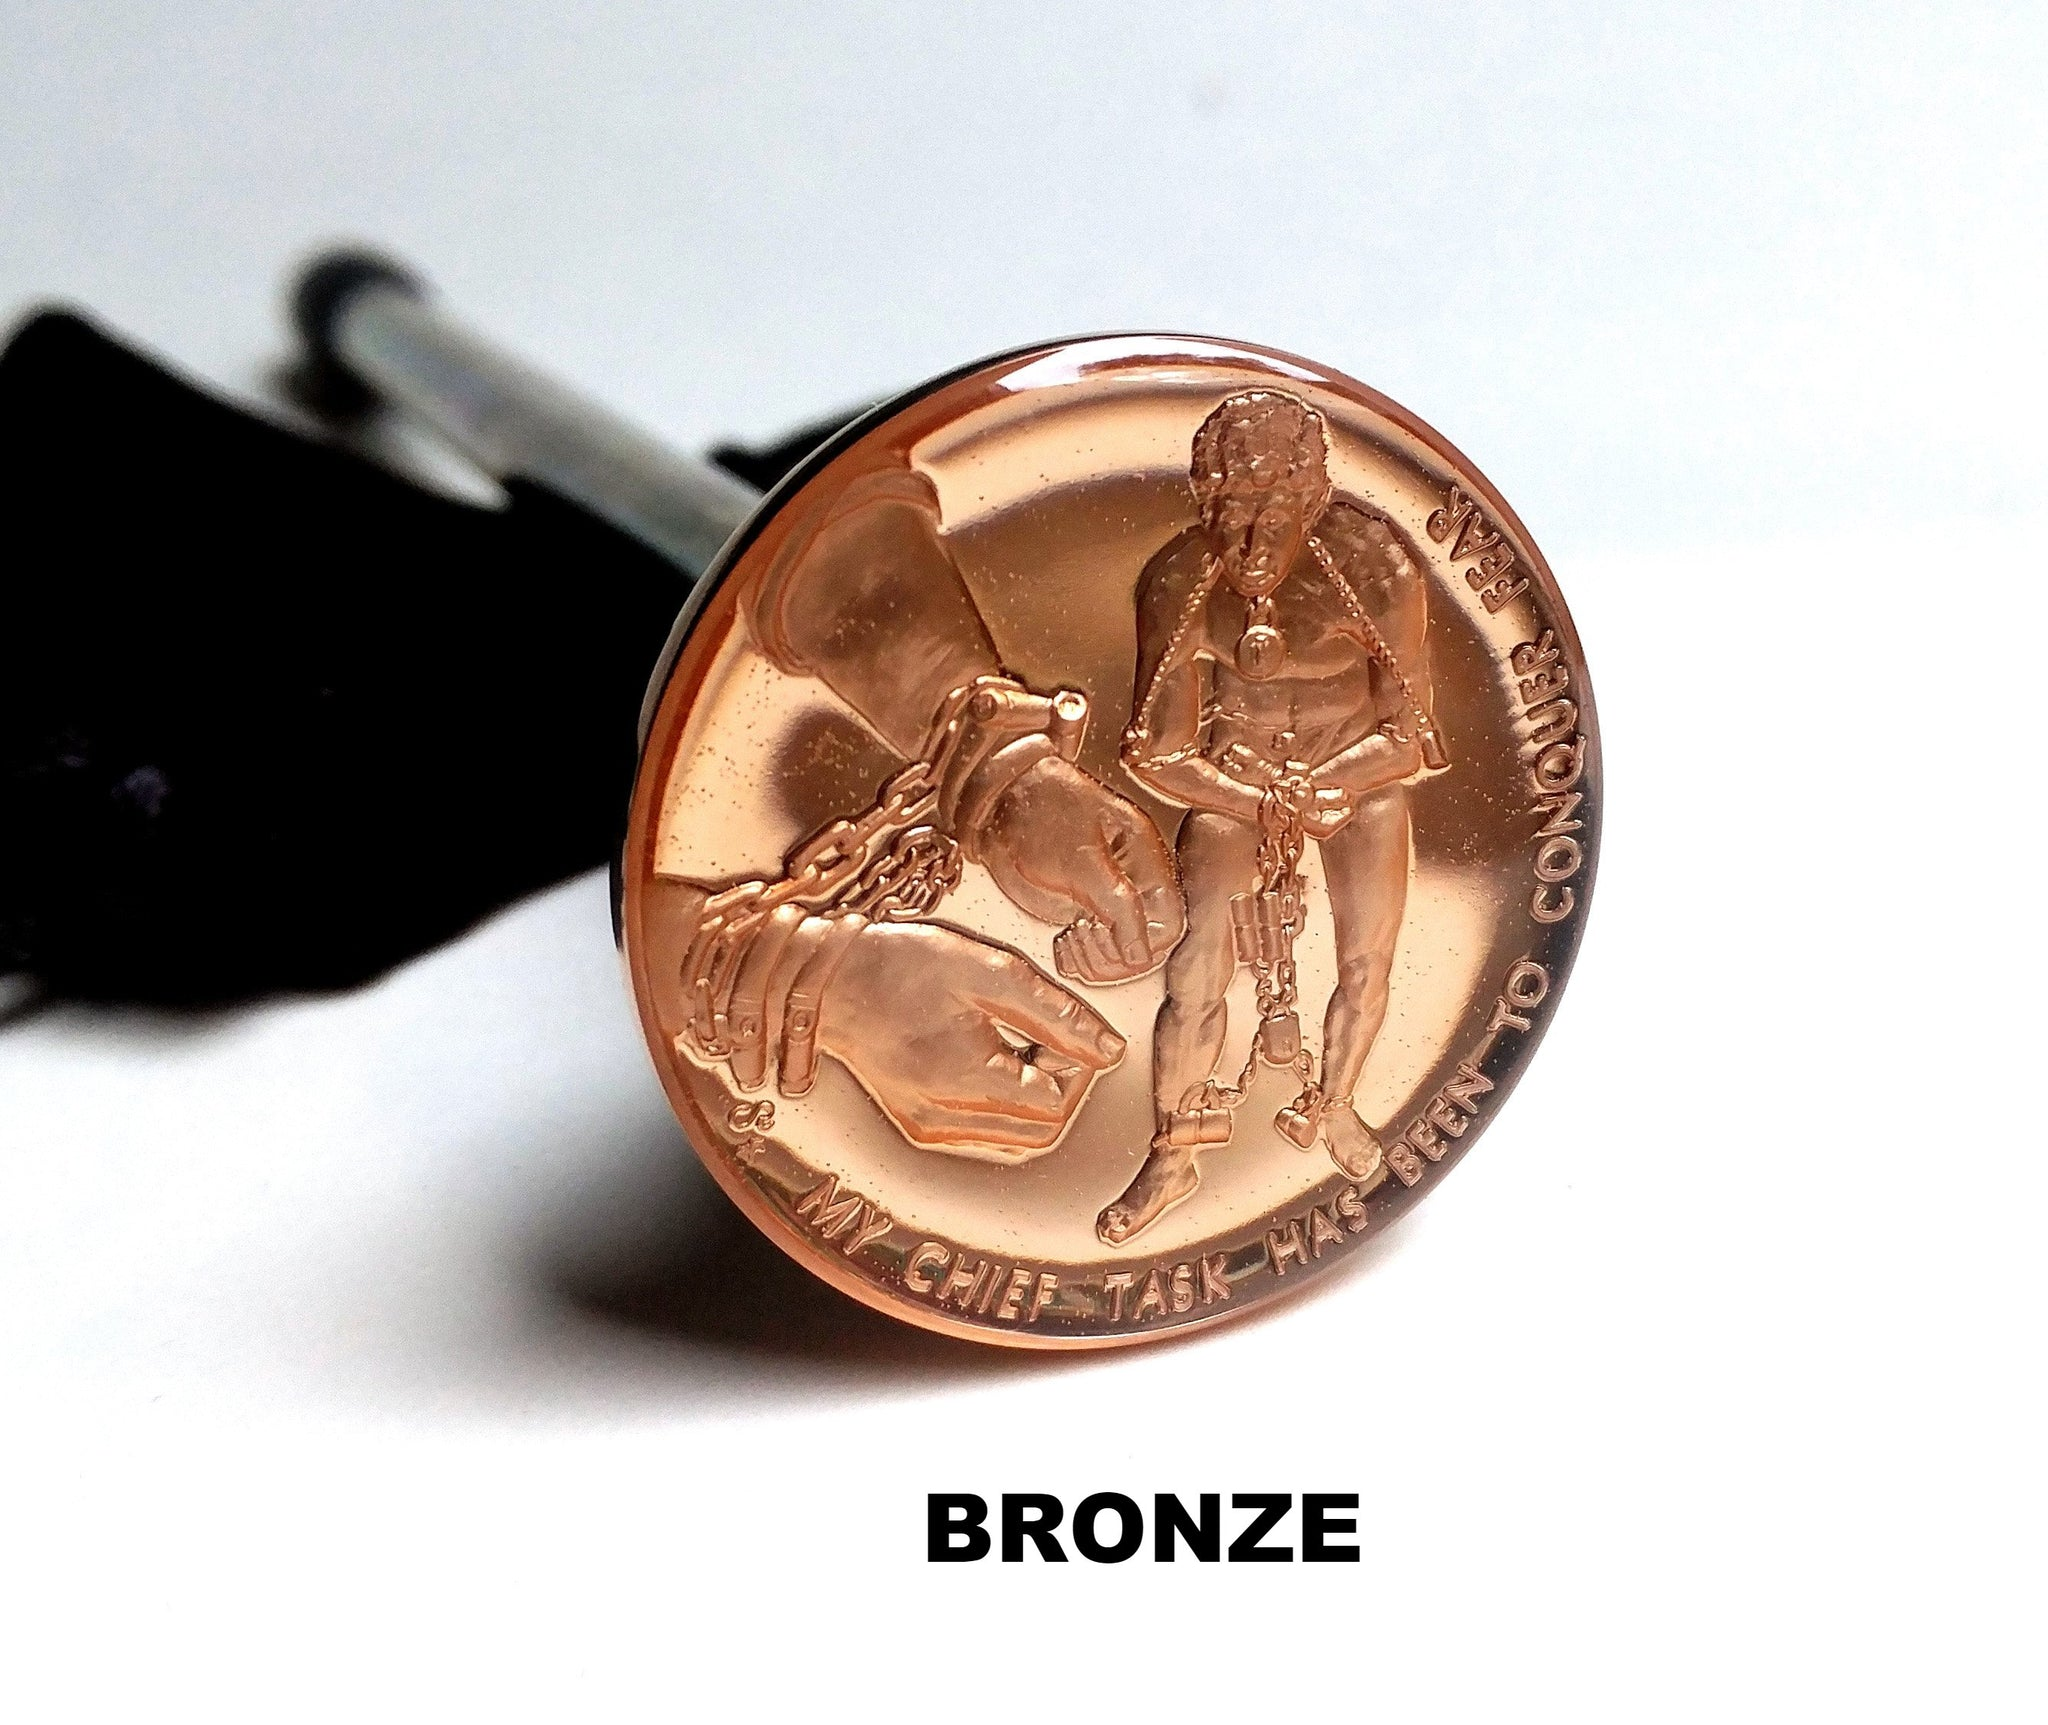 HOUDINI SEANCE BRONZE COIN SHOOTER